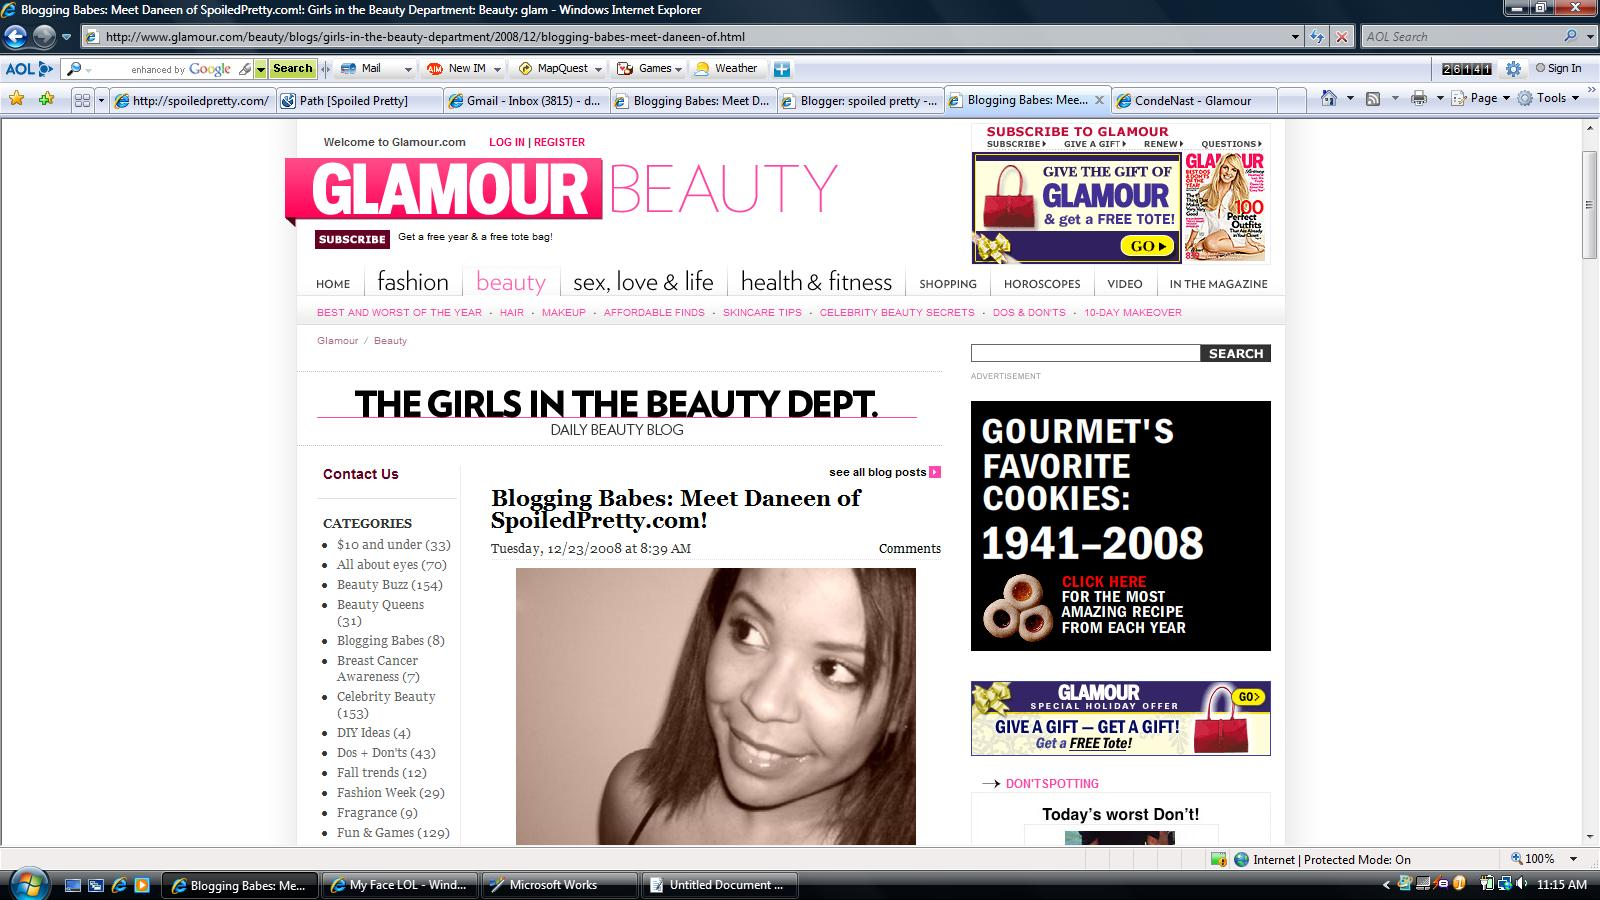 [Spoiled+Pretty+on+Glamour.com]